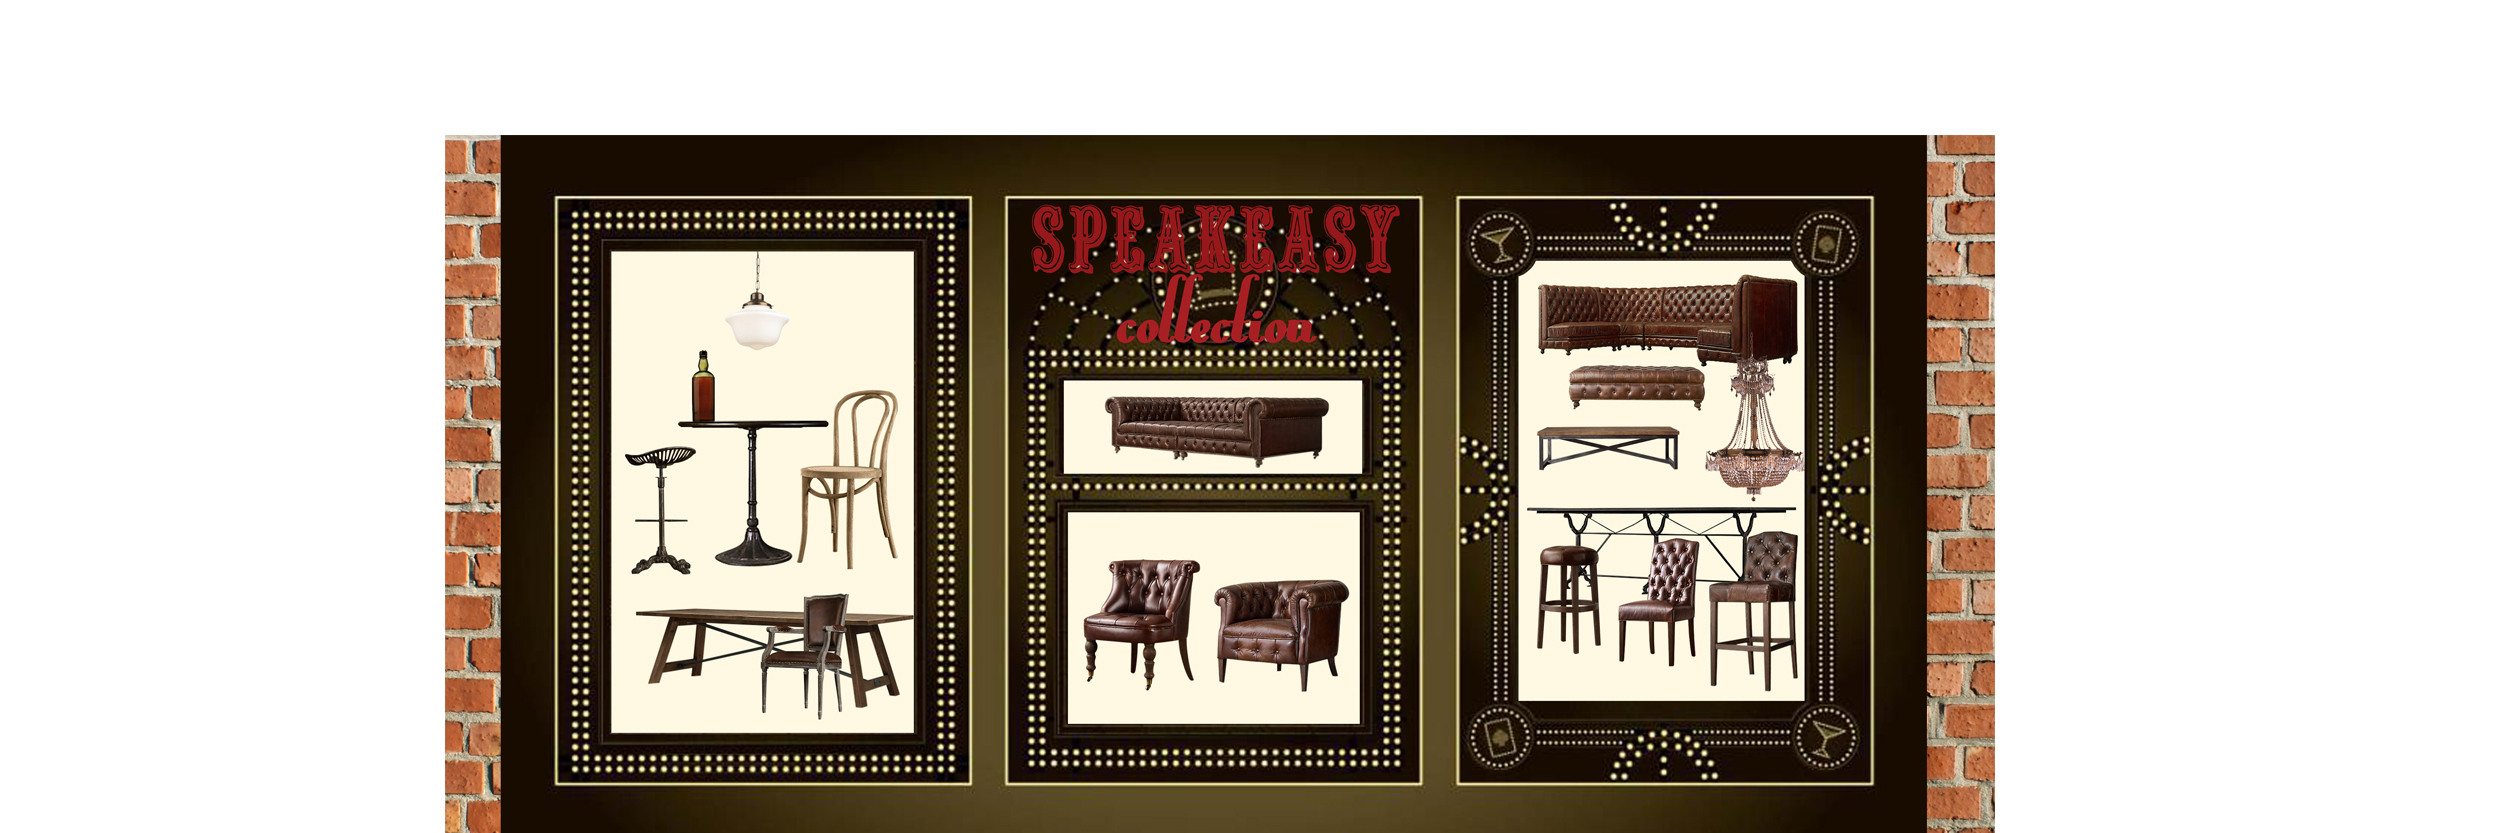 REVISED-SPEAKEASY-WEB-BANNER